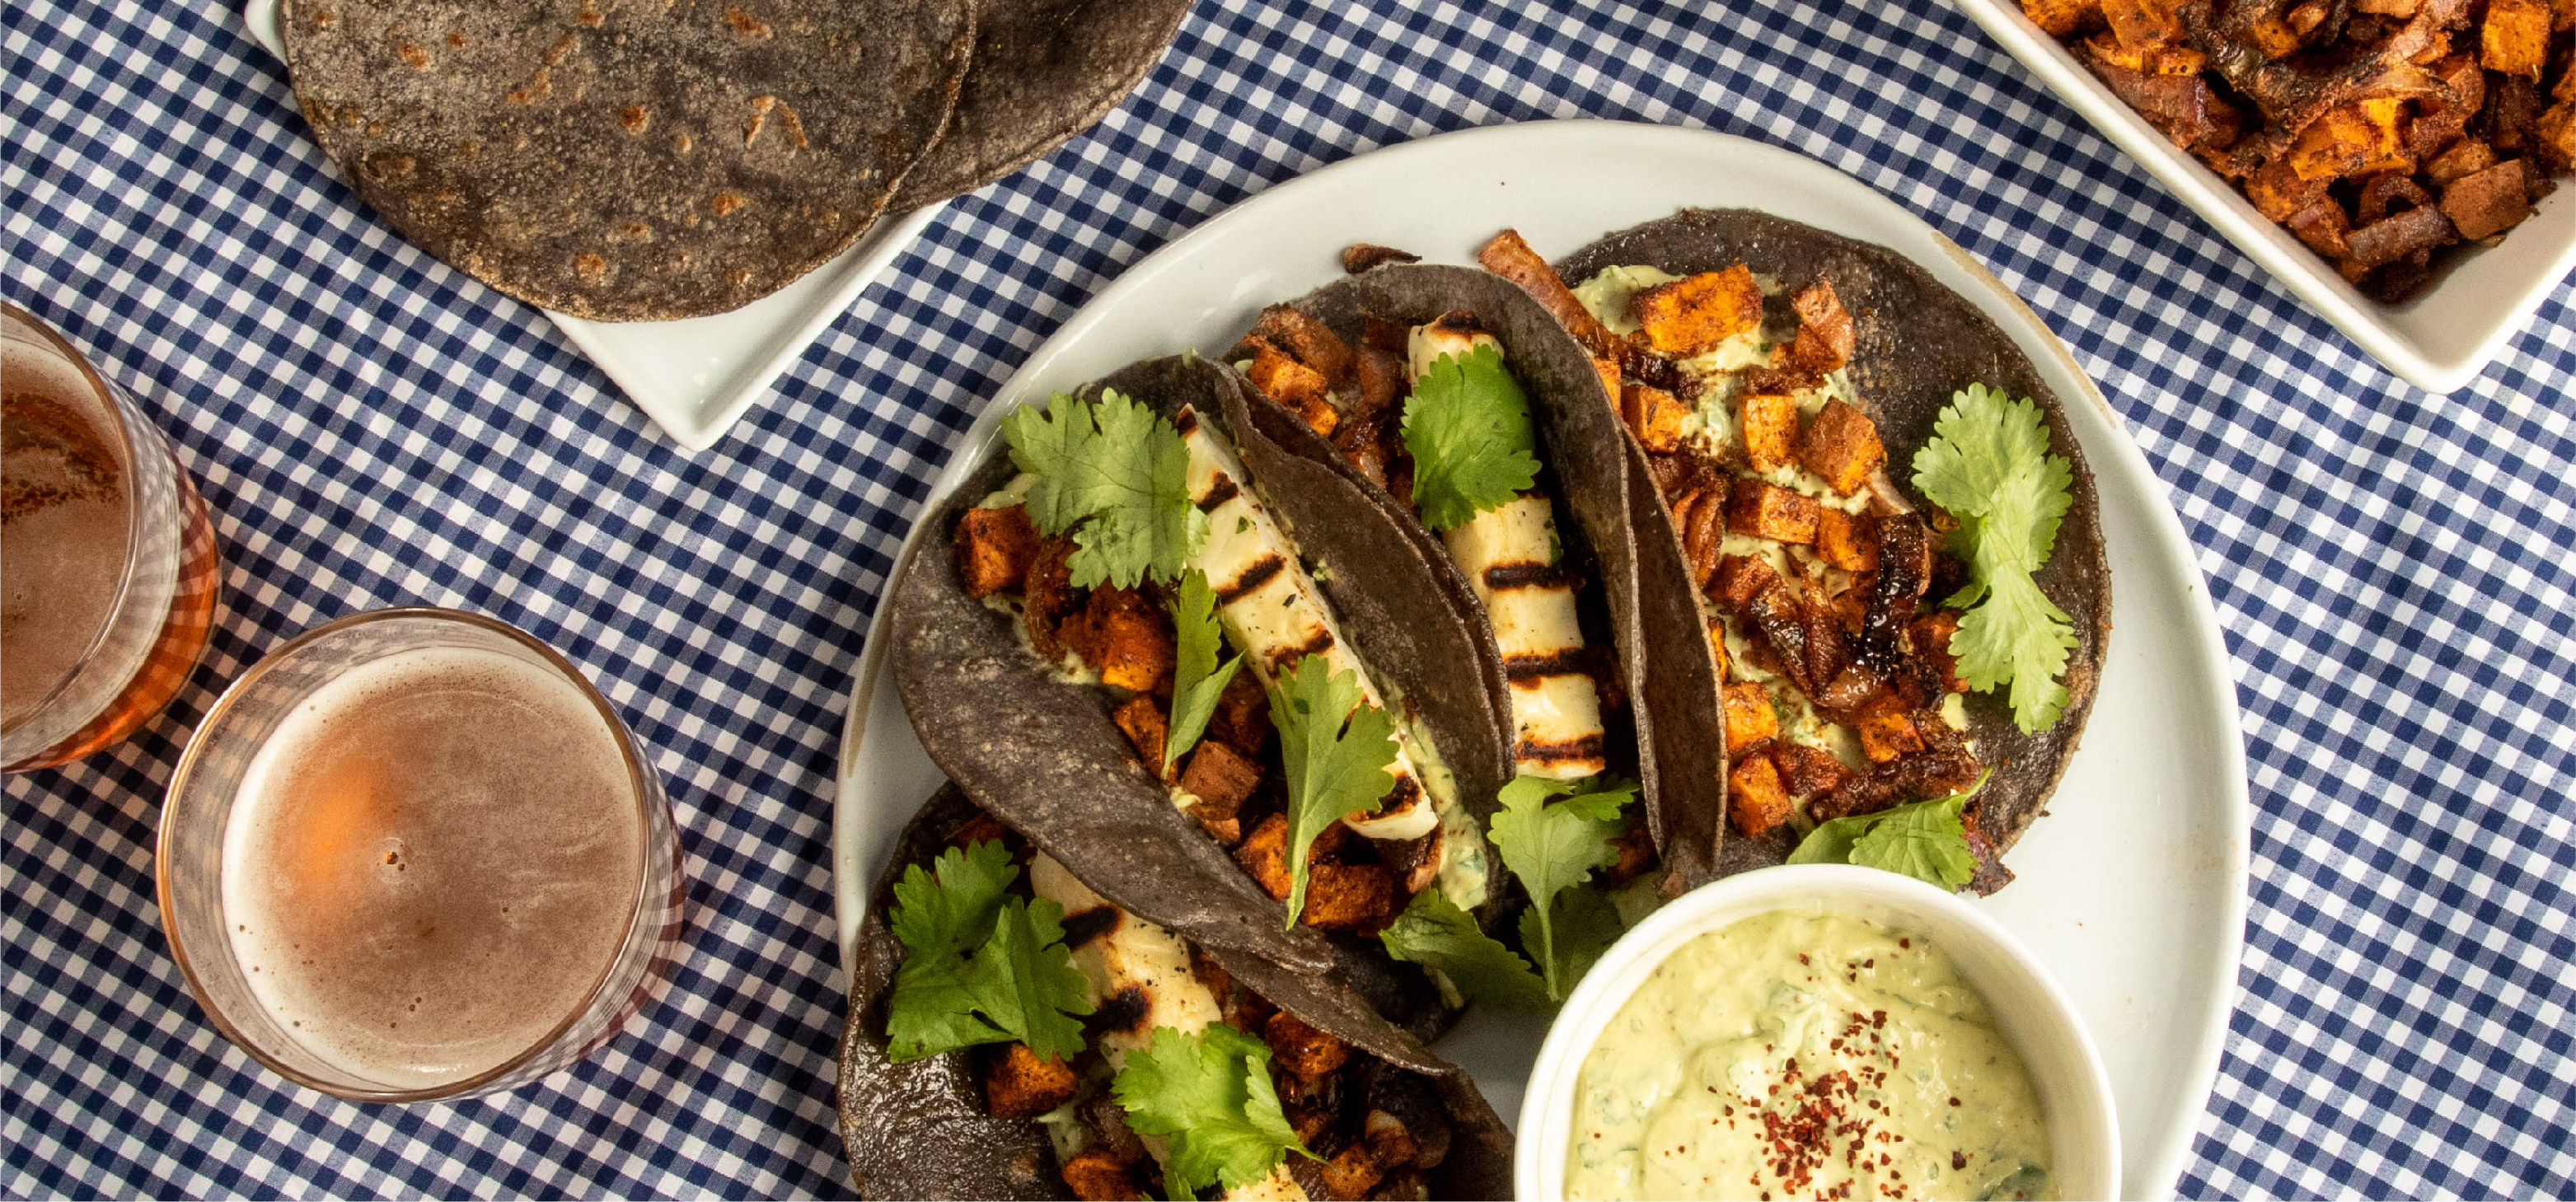 Grilled Halloumi Tacos with Sweet Potatoes and Avocado Crema